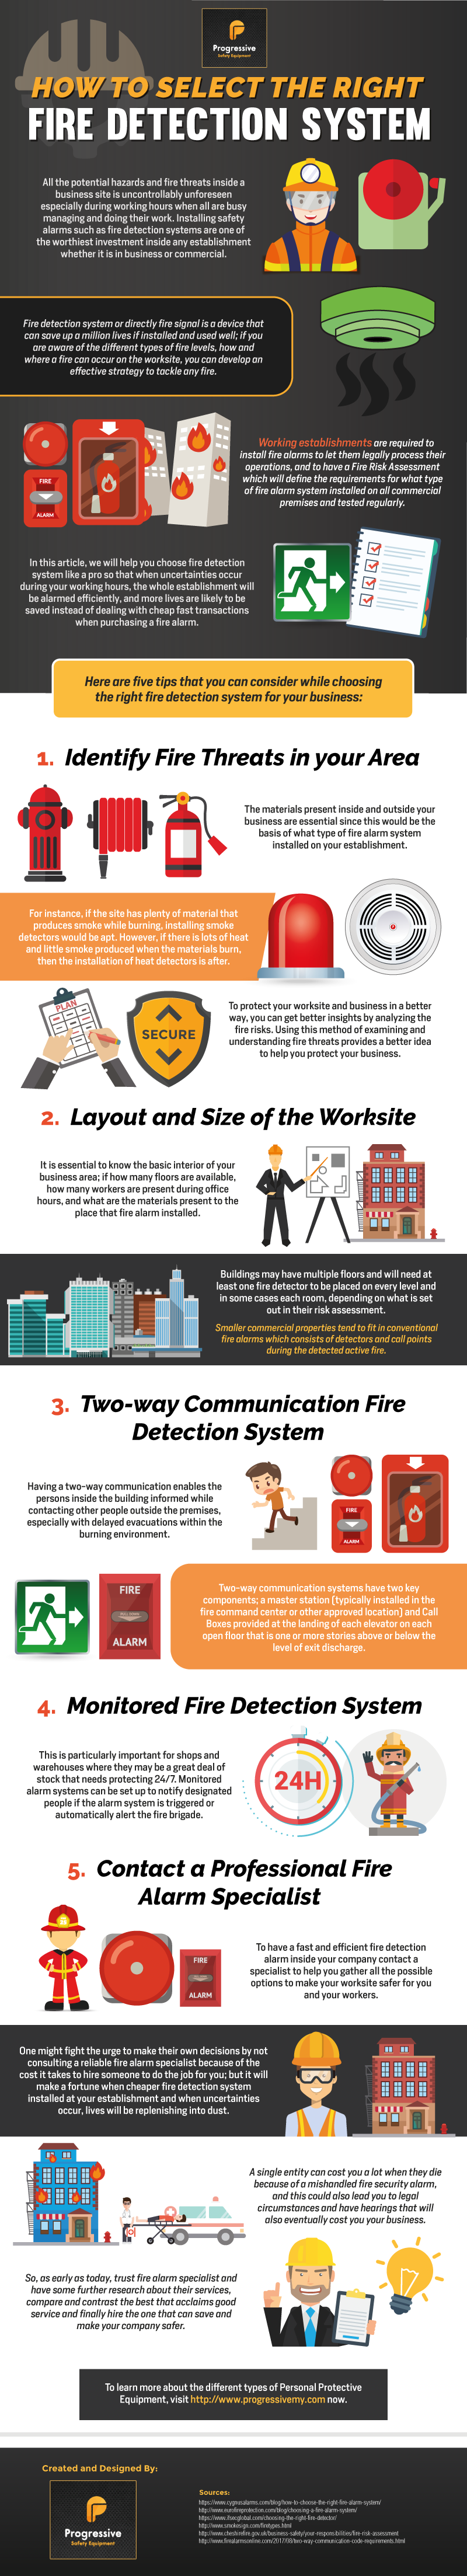 Selecting the Right Fire Detection System: Not a Choice but an Imperative - Infographic